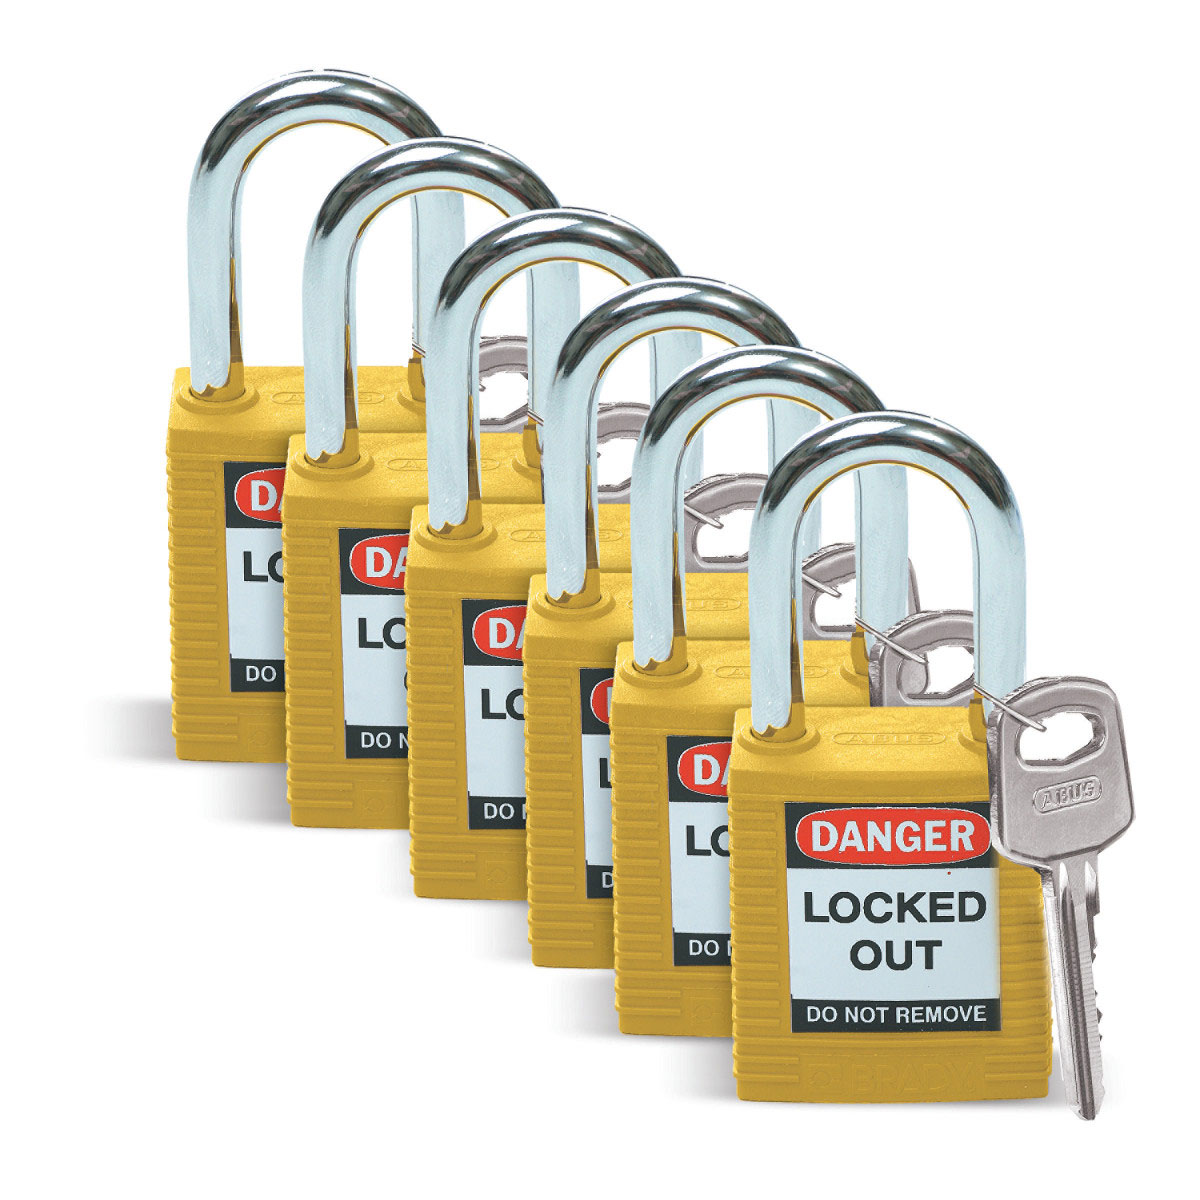 Brady® 51346 Compact Open Shackle Lockout Padlock, Different Key, Yellow, Nylon Body, 1/4 in Dia x 1-1/2 in H x 0.8 in W Steel Shackle, 1-3/4 in L Body